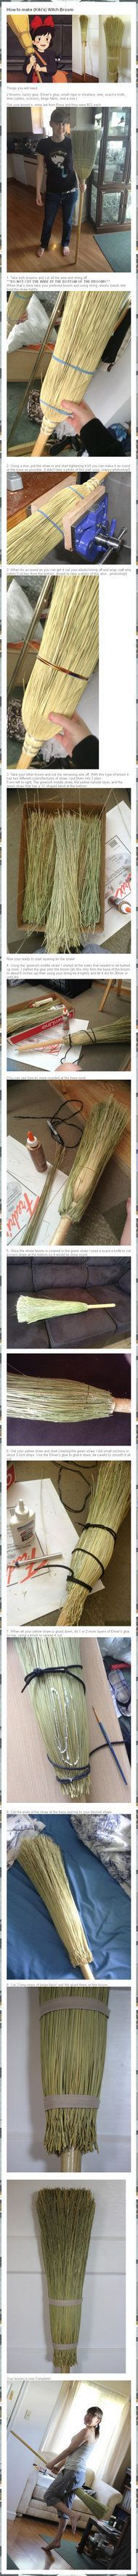 how to redo a broom to look like kiki's broom from kiki's delivery service -- Could also be used for Harry Potter cosplay/any witch costume Kiki Cosplay, Cosplay Diy, Cosplay Makeup, Costume Makeup, Cosplay Outfits, Halloween Cosplay, Best Cosplay, Halloween Fun, Cosplay Ideas